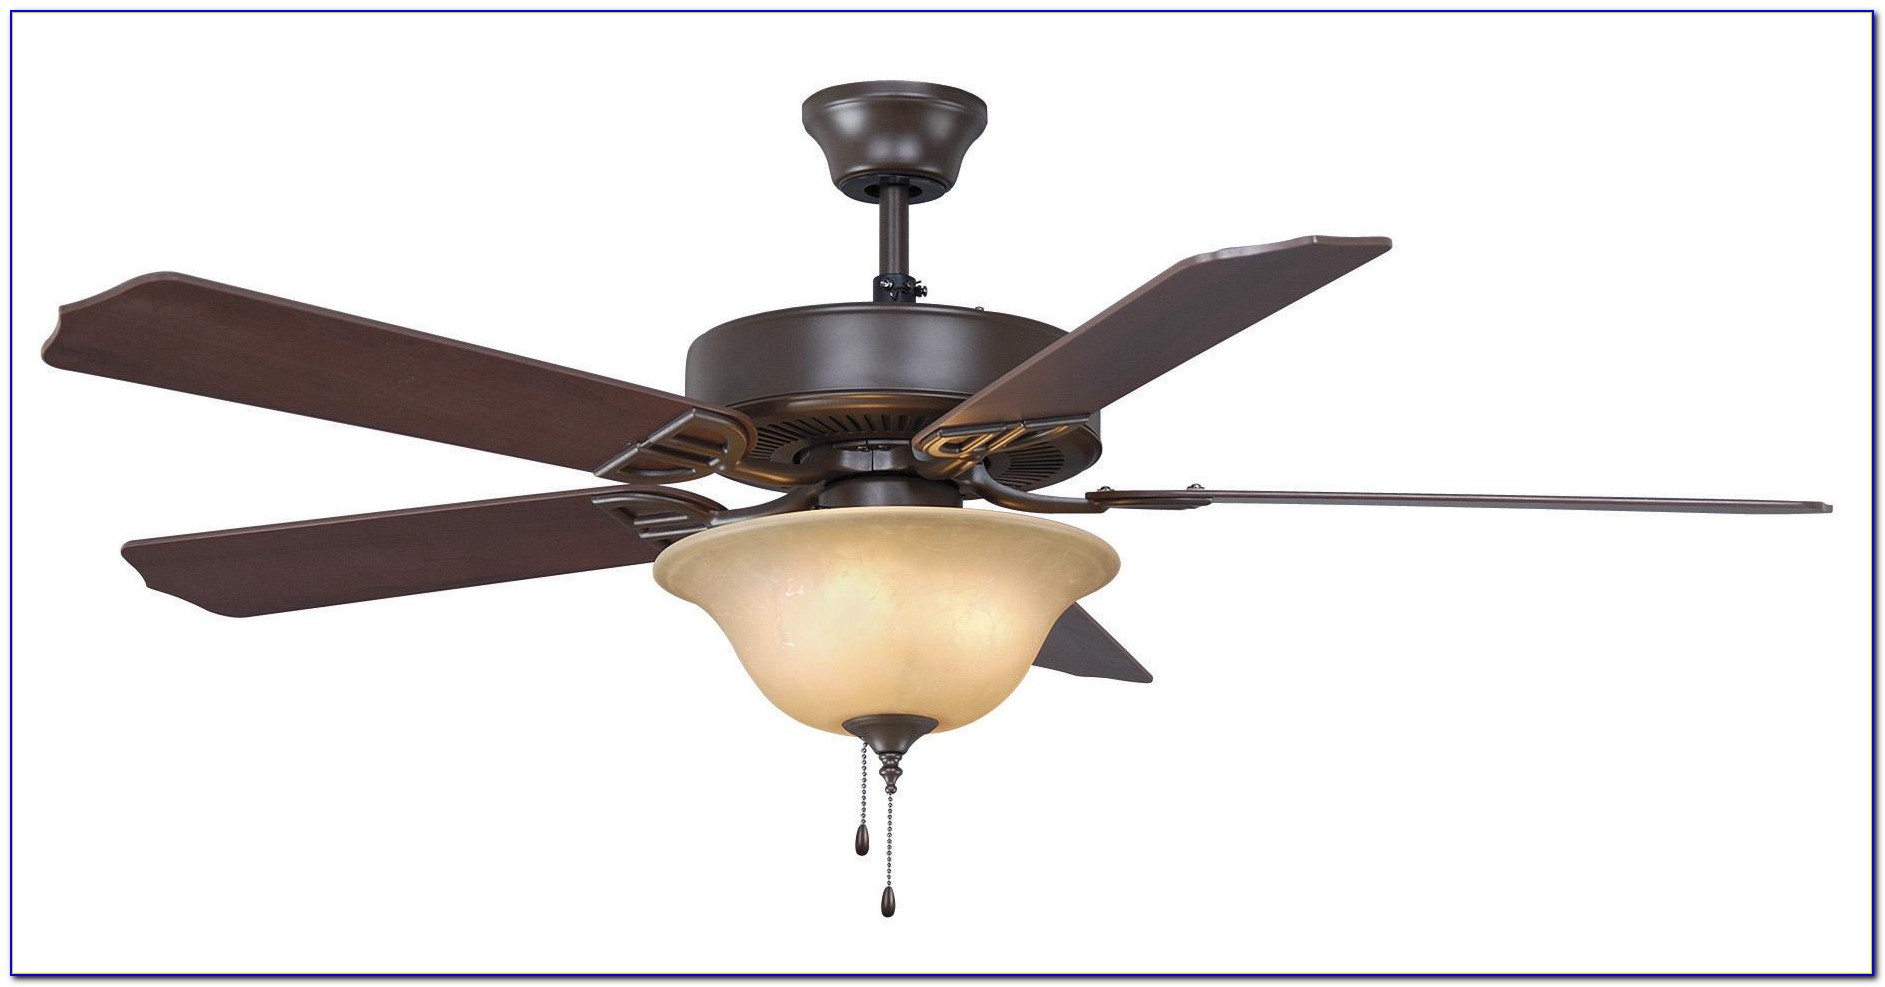 Light Bulb Wattage For Ceiling Fan